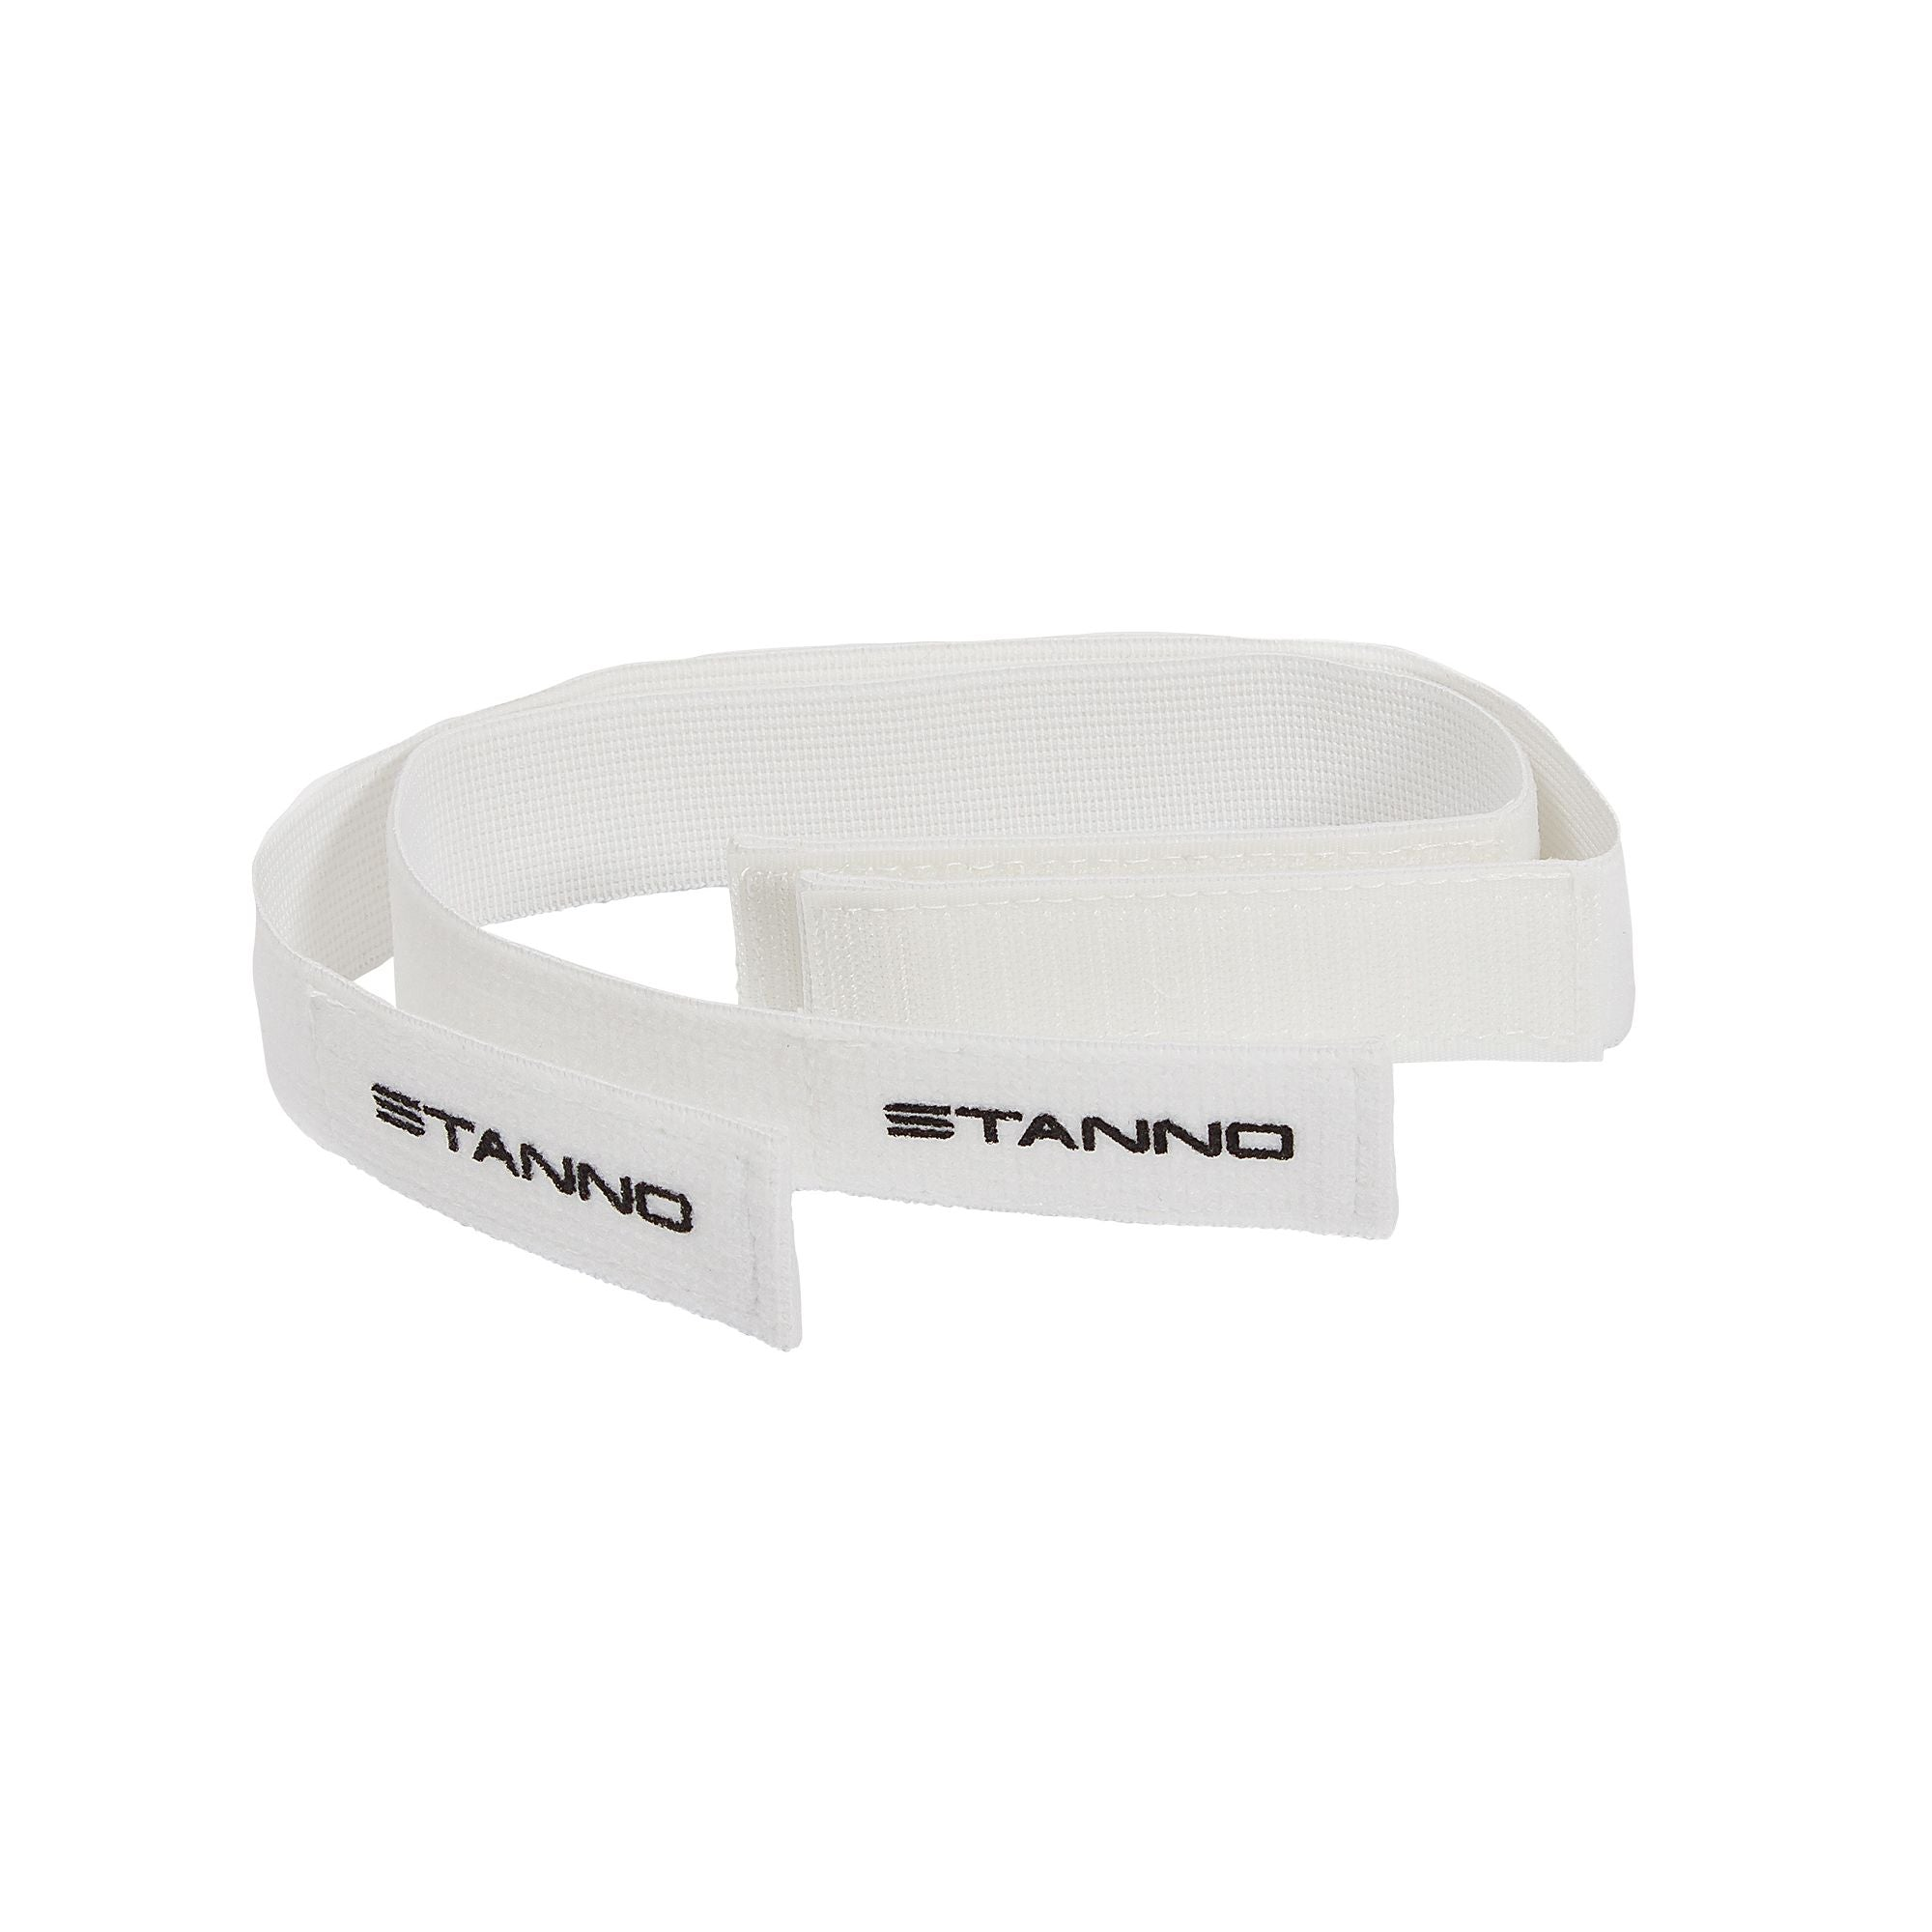 2 Stanno white socks holders with black printed Stanno logo